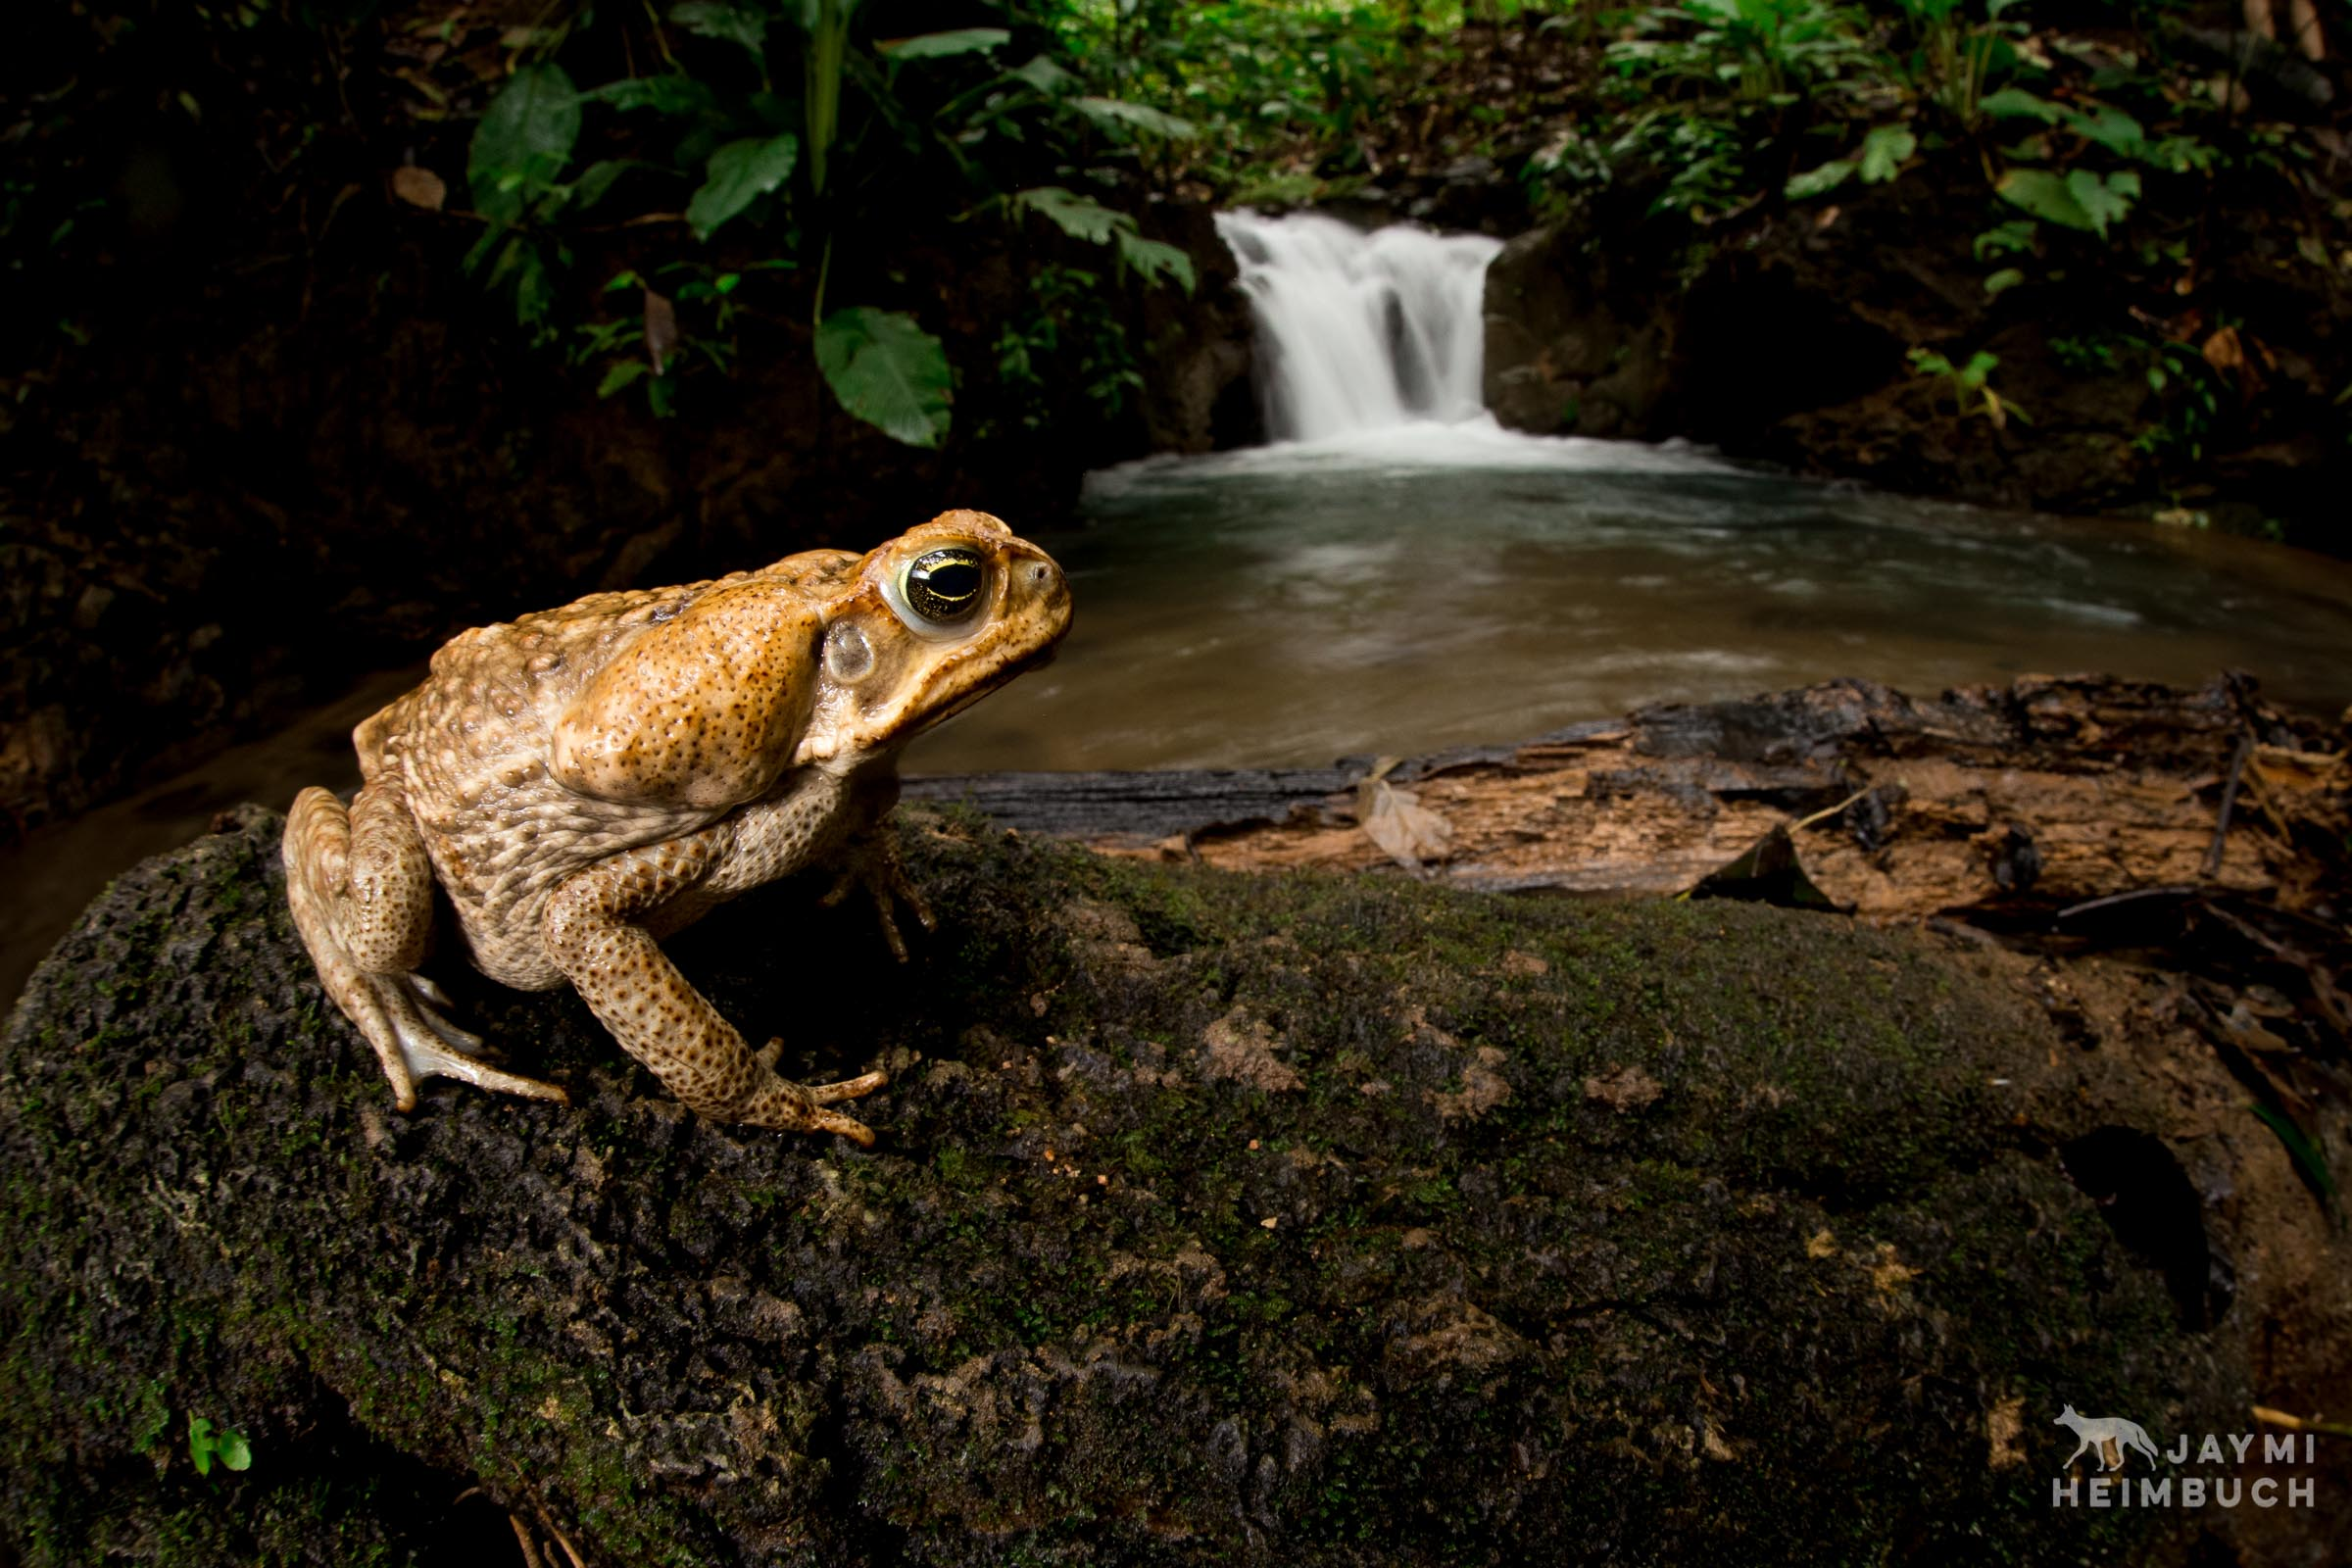 An adult marine toad (Rhinella marina) rests on a river rock in front of a waterfall in Osa Penninsula, Costa Rica, Central America.